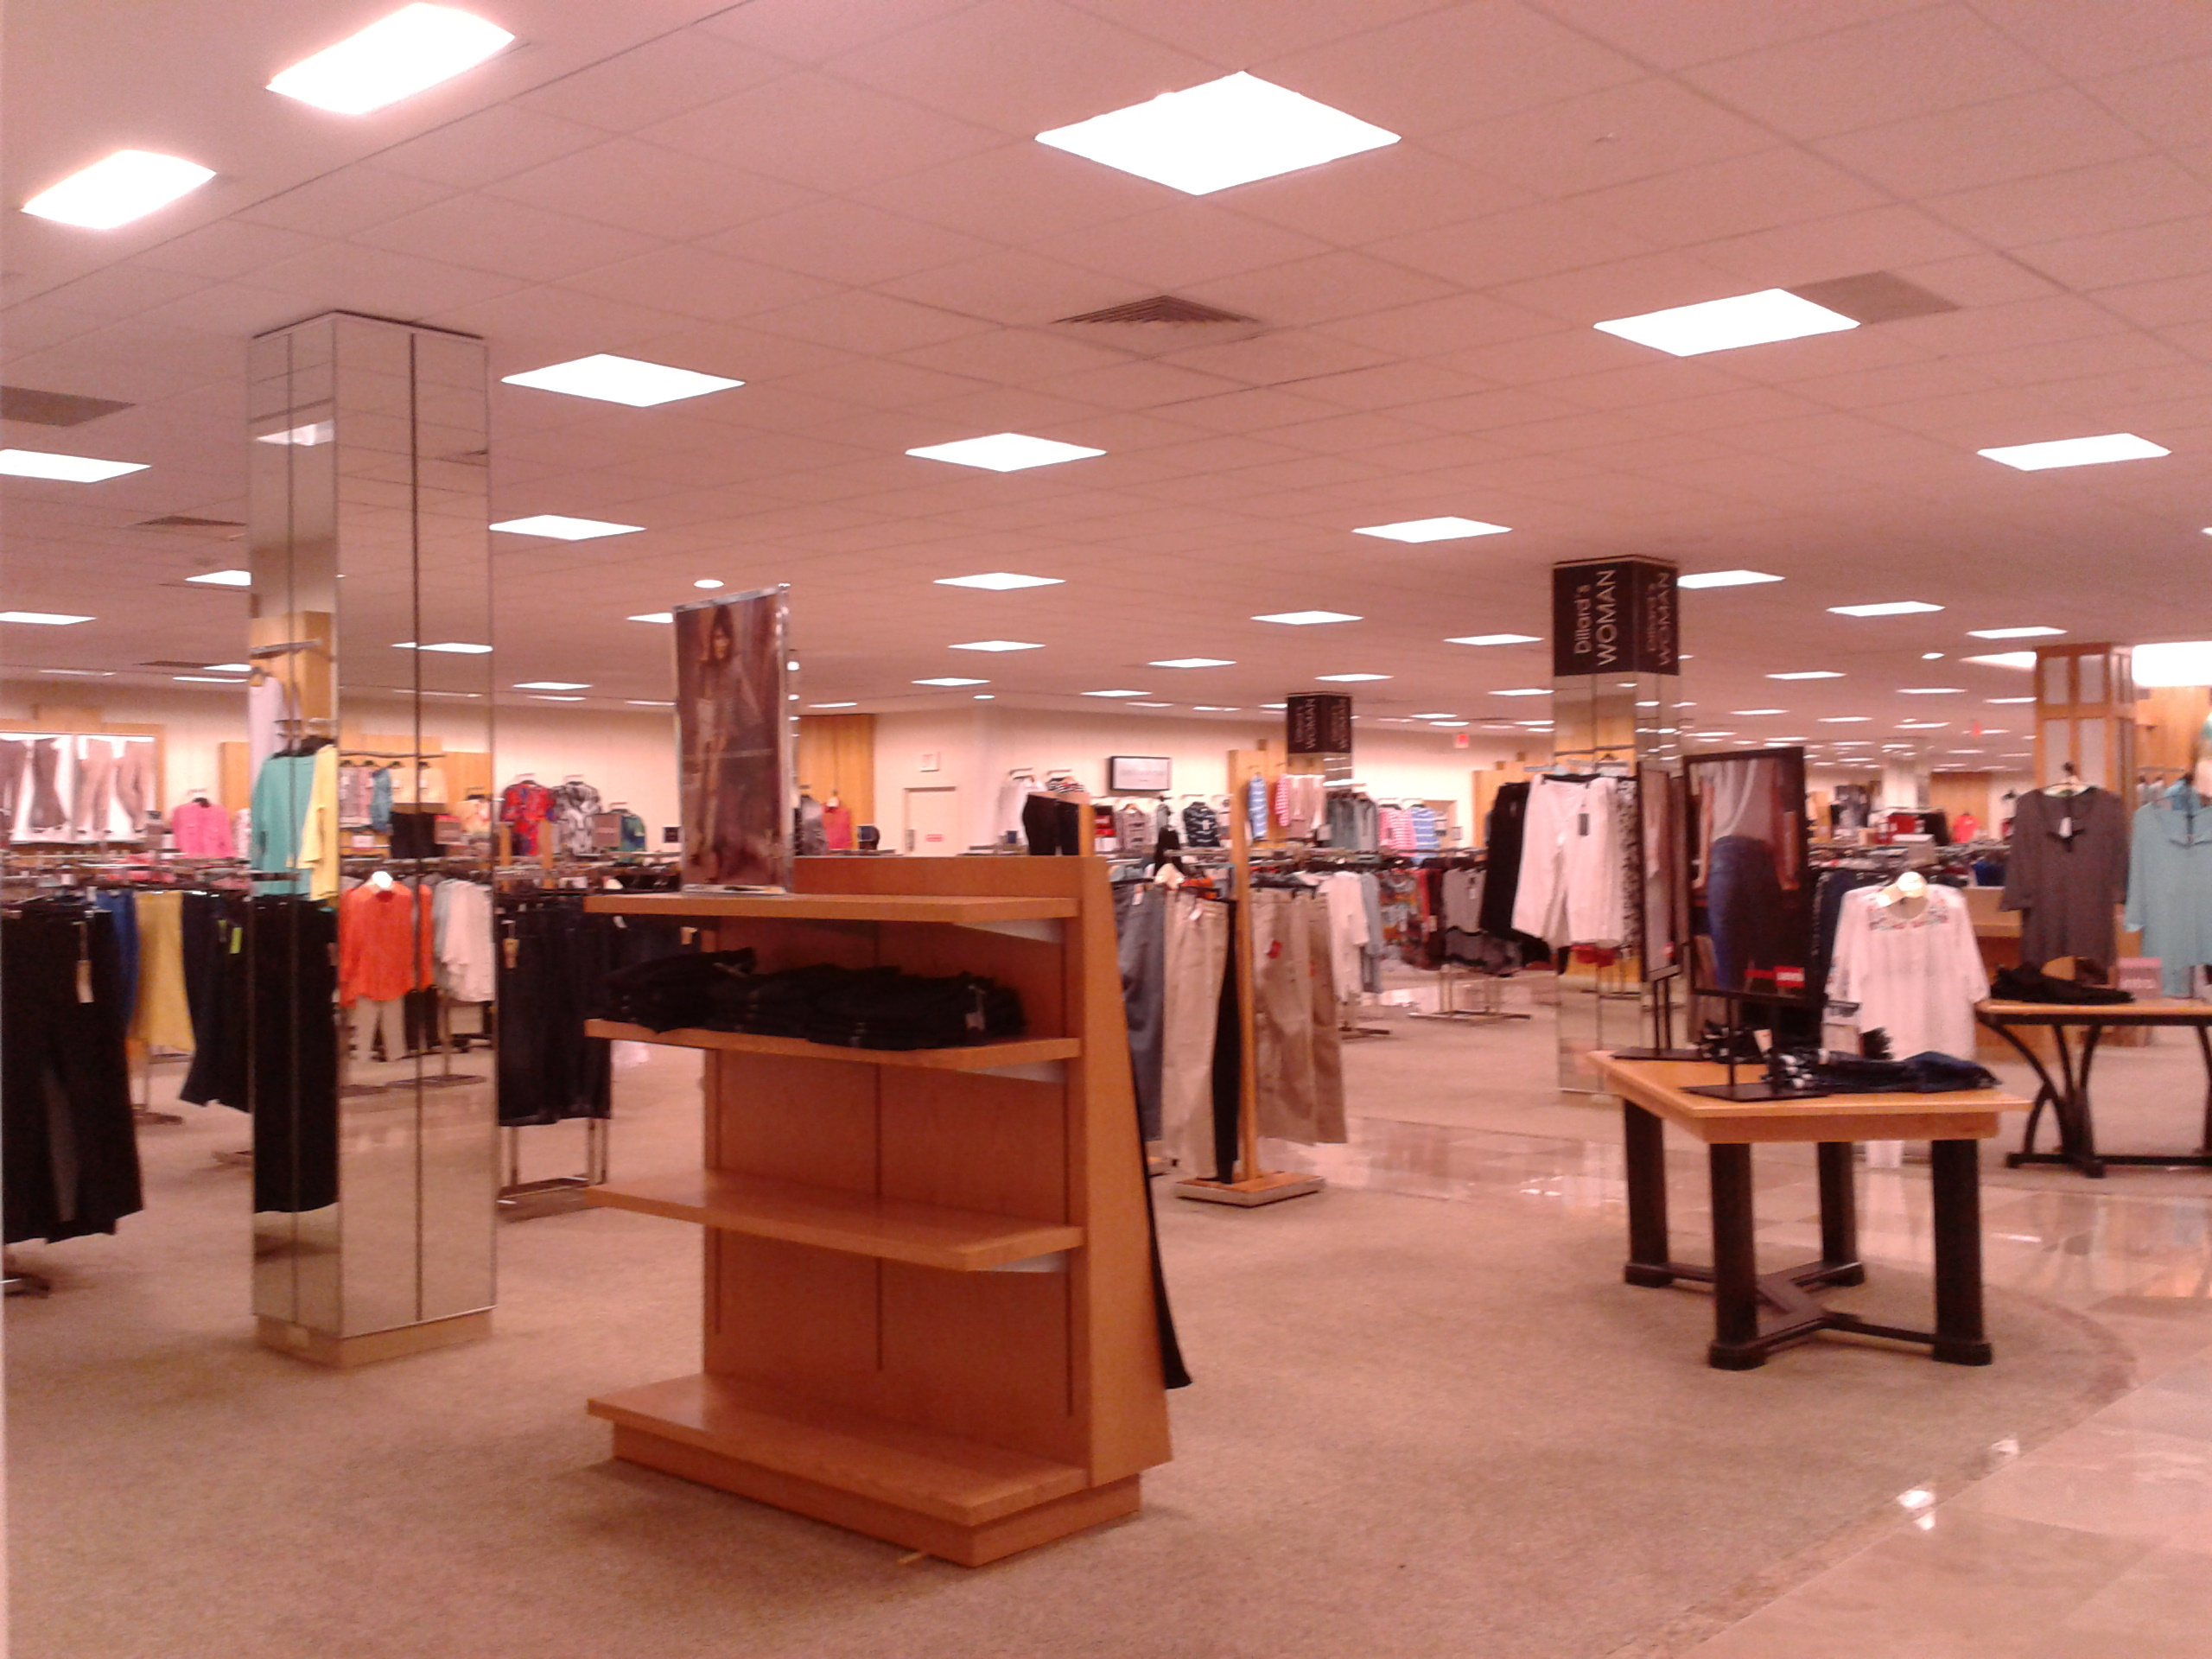 File:Interior Of Dillards Store, Four Seasons Town Centre, Greensboro, NC.